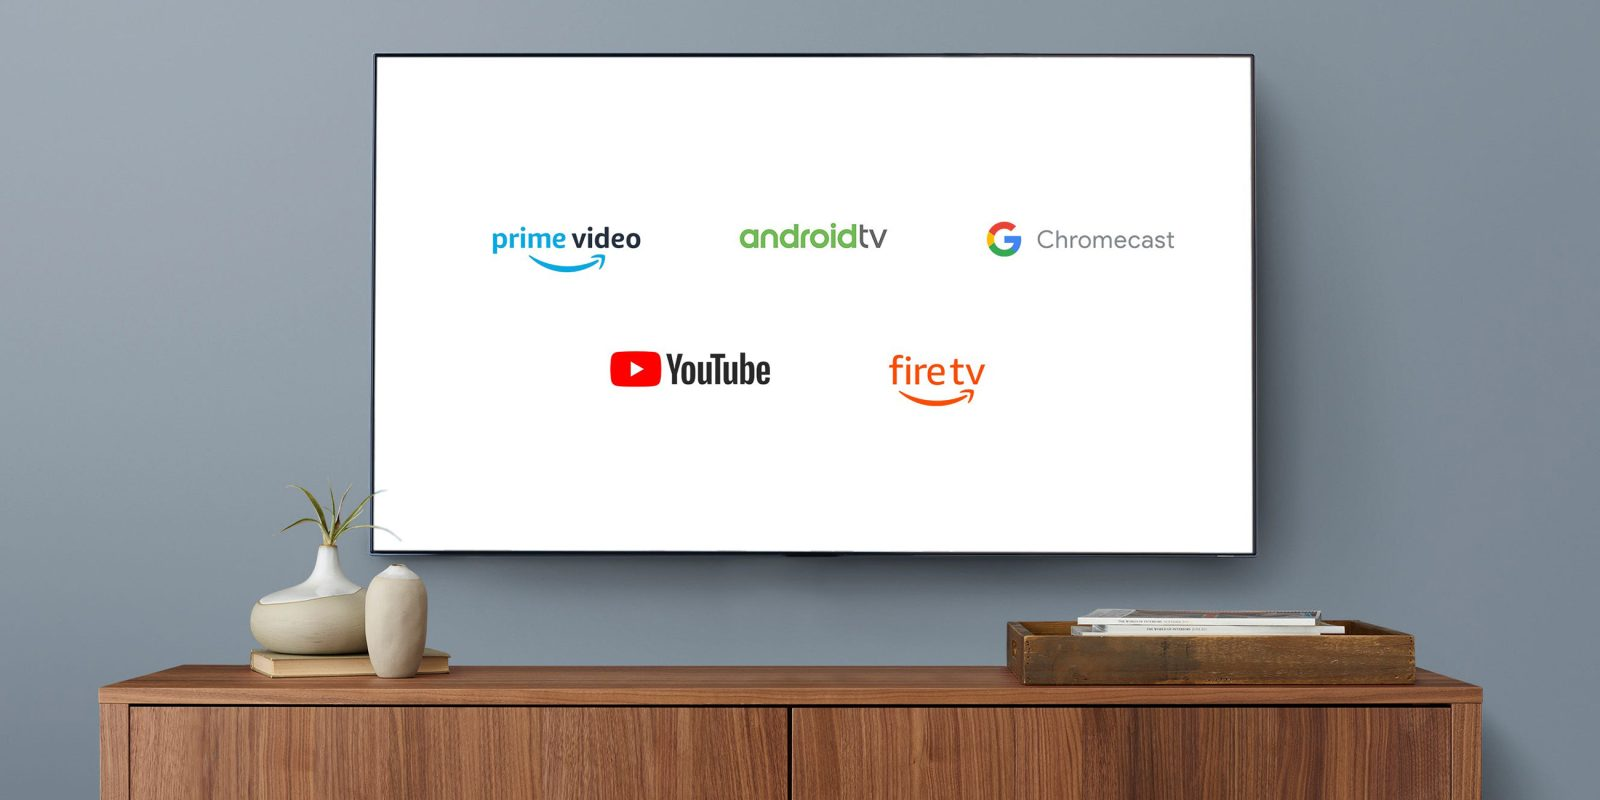 Android TV - 9to5Google